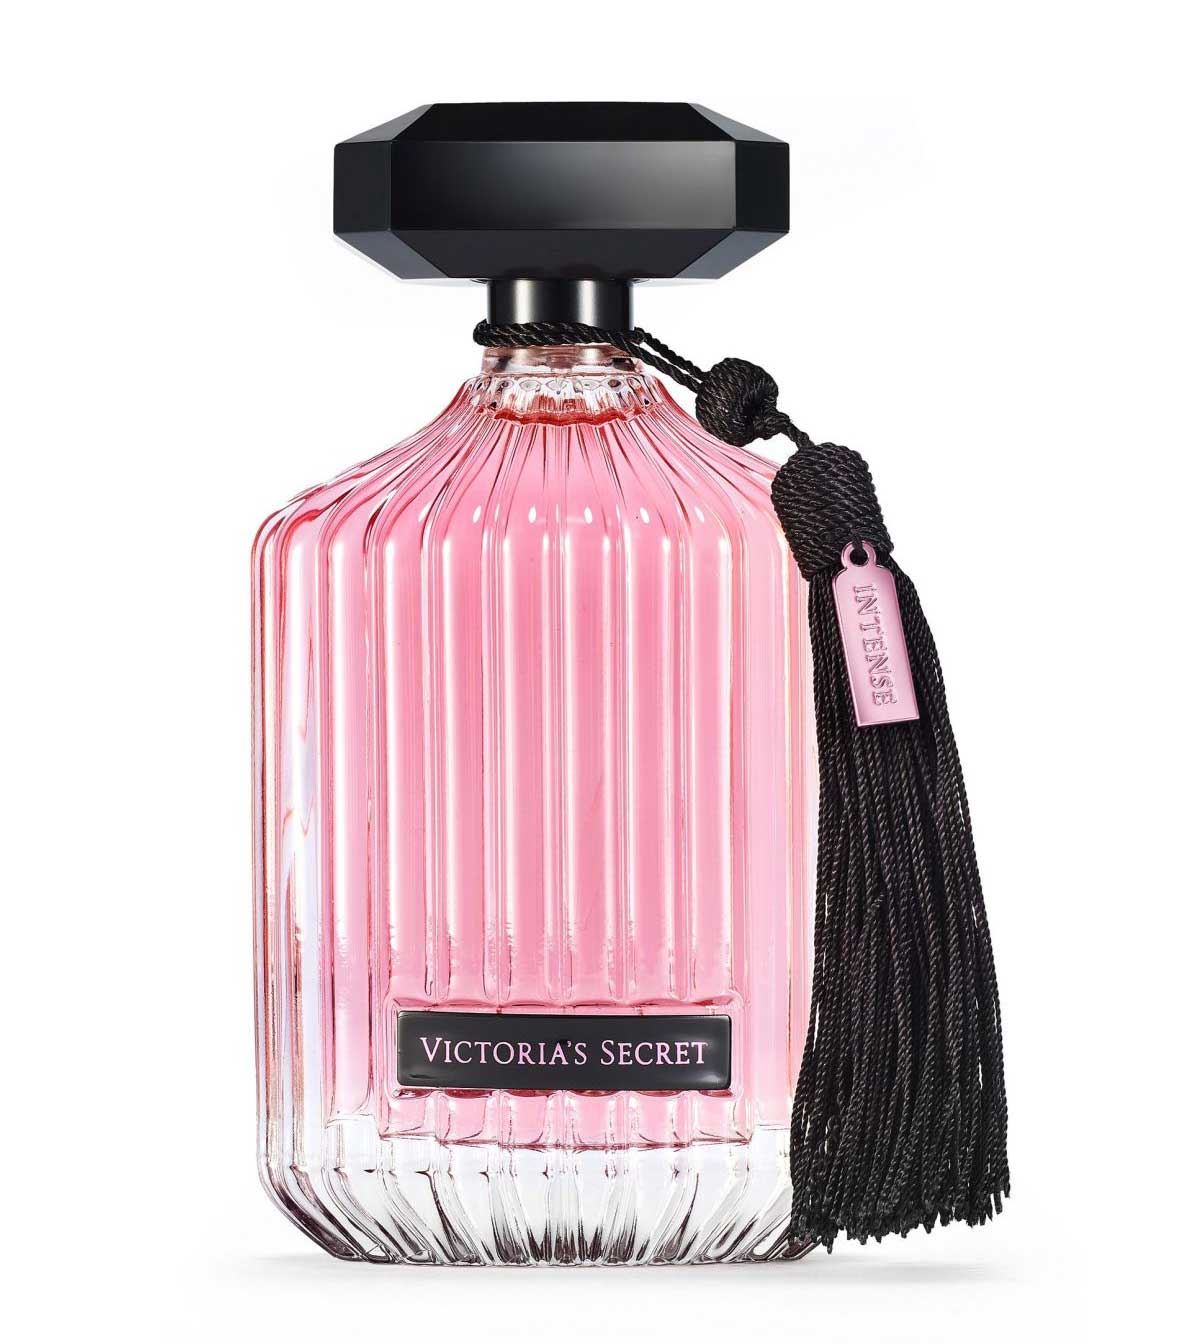 For your edgy, chic friend... the new [*Victoria's Secret Intense Fragrance, $95 for 50ml*](http://victoriassecretau.com) is everything to make her feel, and *smell* like a VS ~angel~. We bet Kendall and Gigi wear this on the reg.